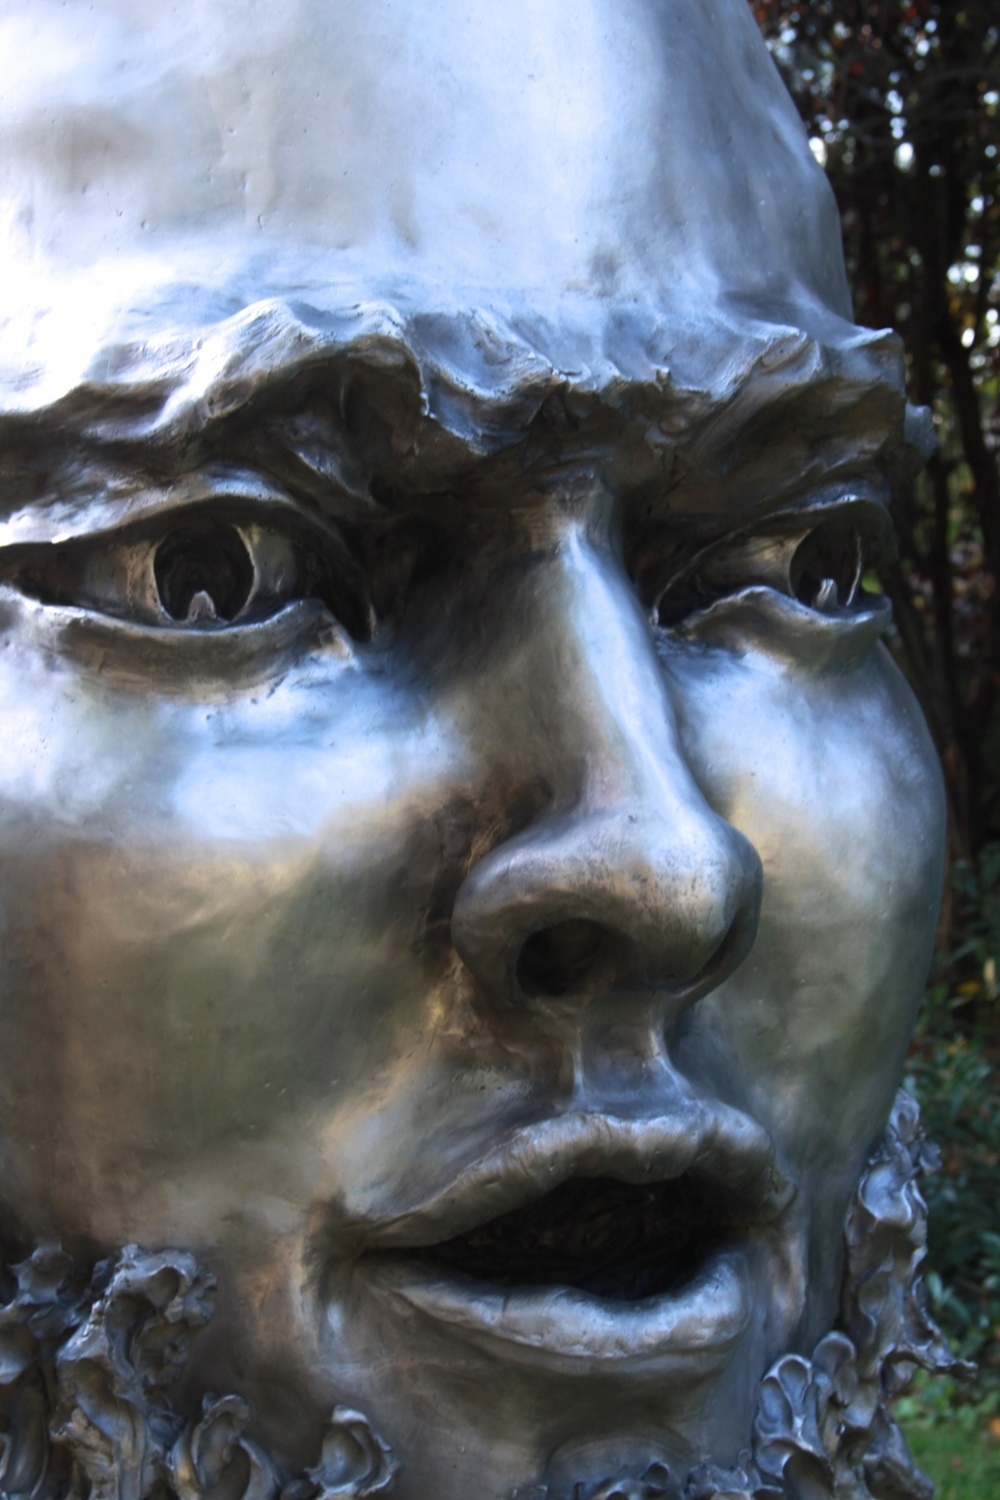 Fierce, outdoor sculpture (cast aluminum) bronze head sculpture, public art sculpture figure